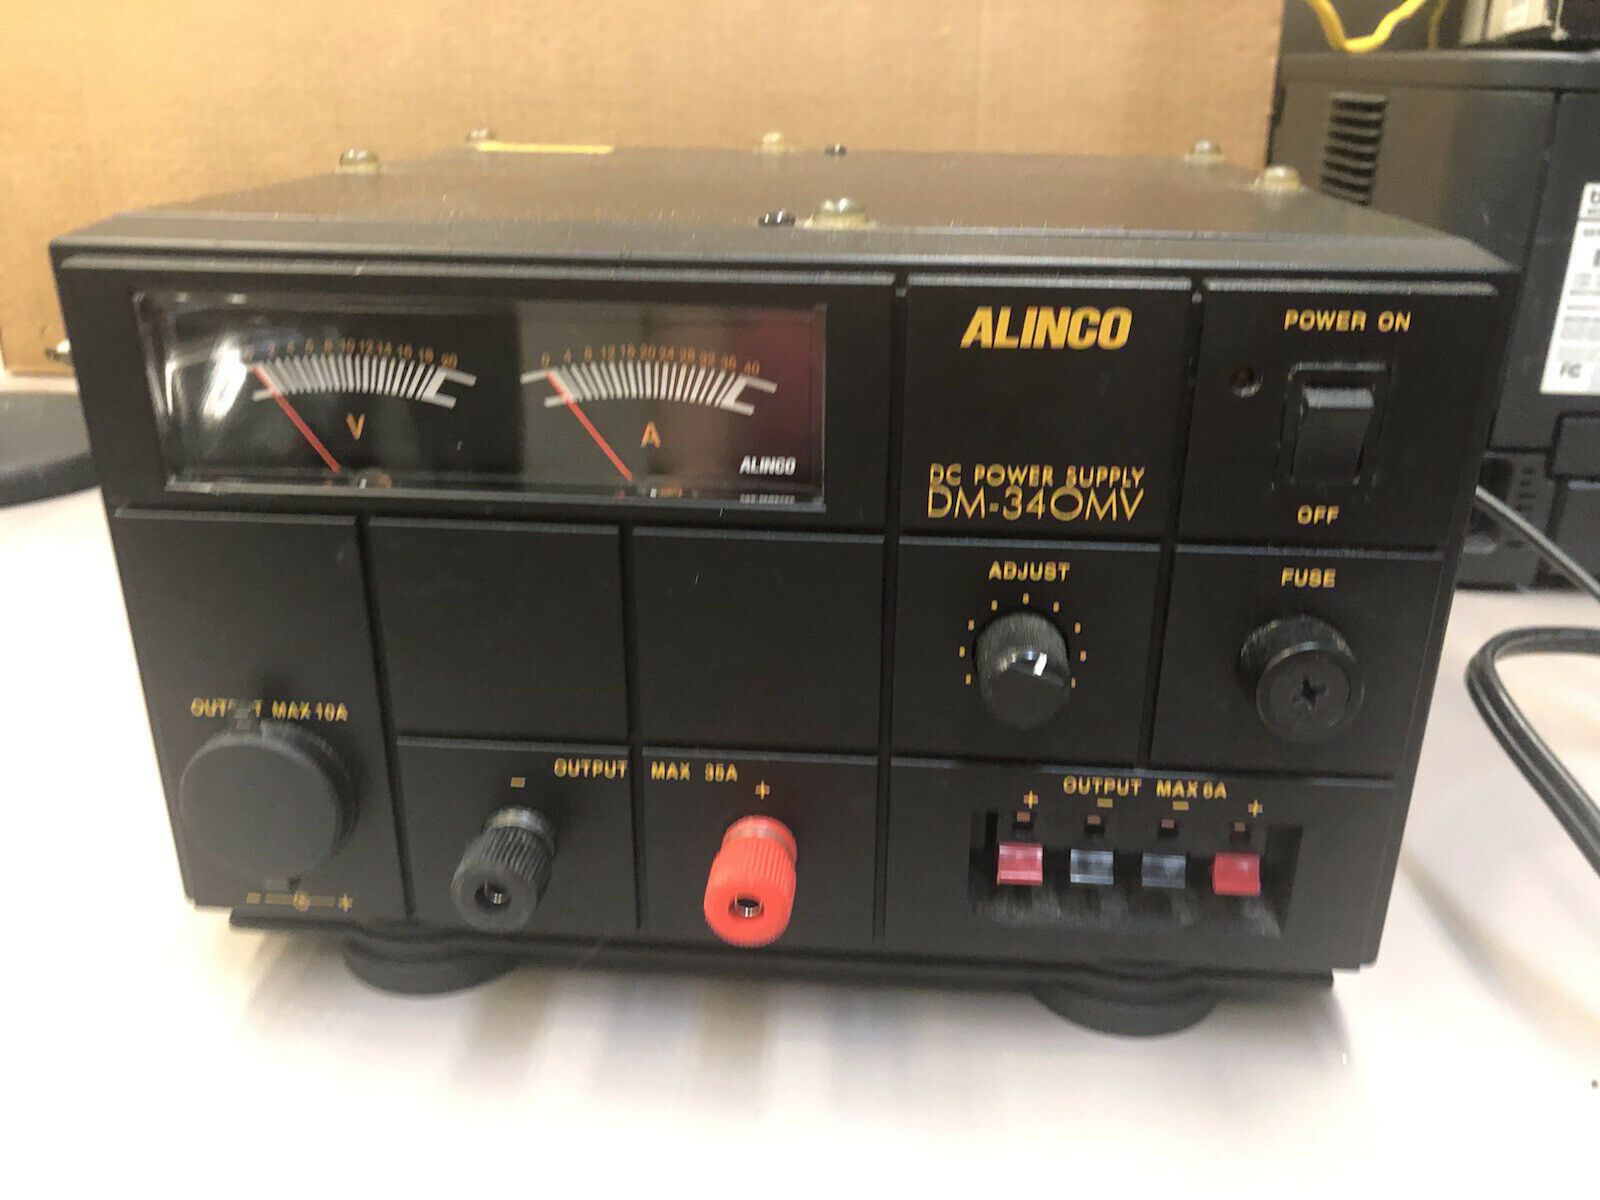 Alinco DM-340MV DC Class 2.5 Power Supply 50 to 60Hz, 35A Max, 30A Continuous. Available Now for 150.00